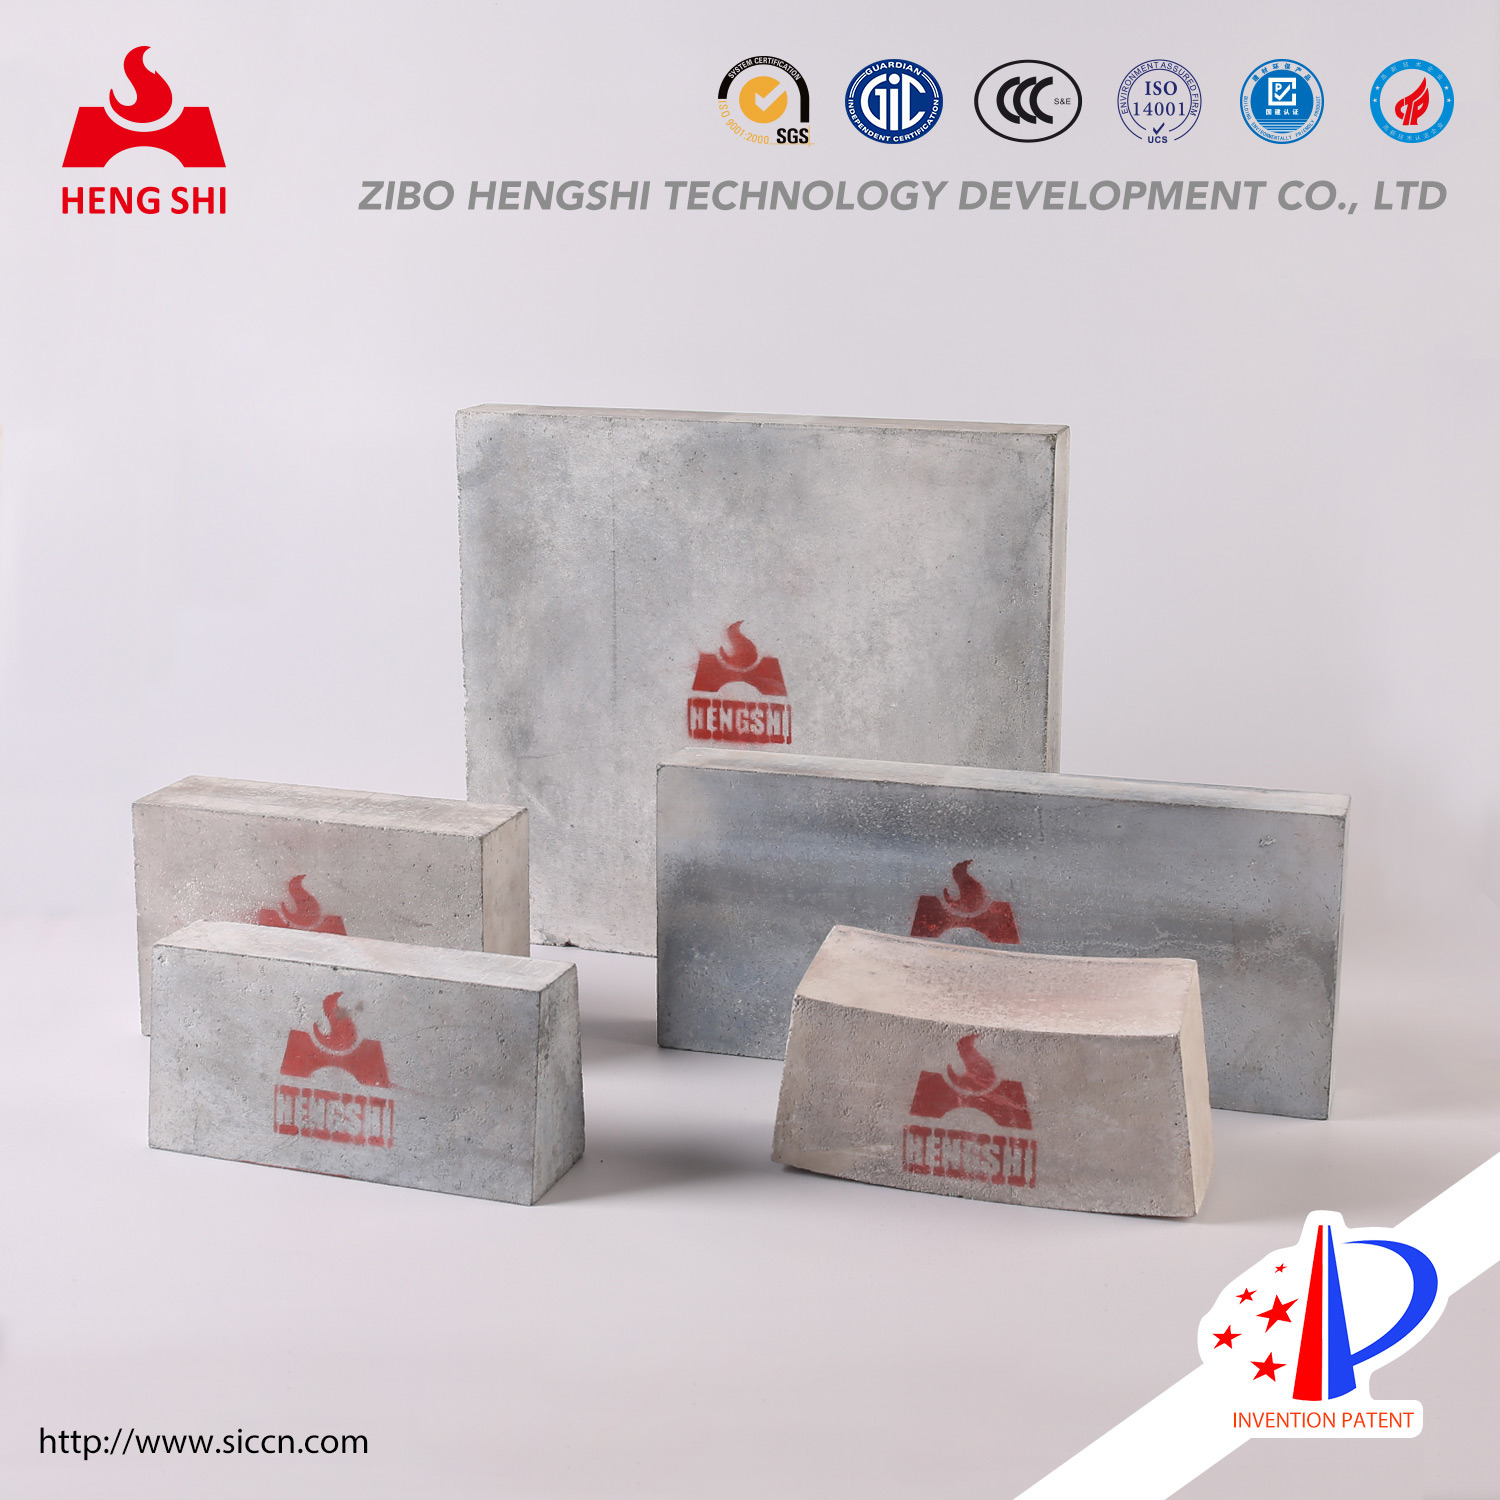 LG-7 Silicon Nitride Bonded Silicon Carbide Brick